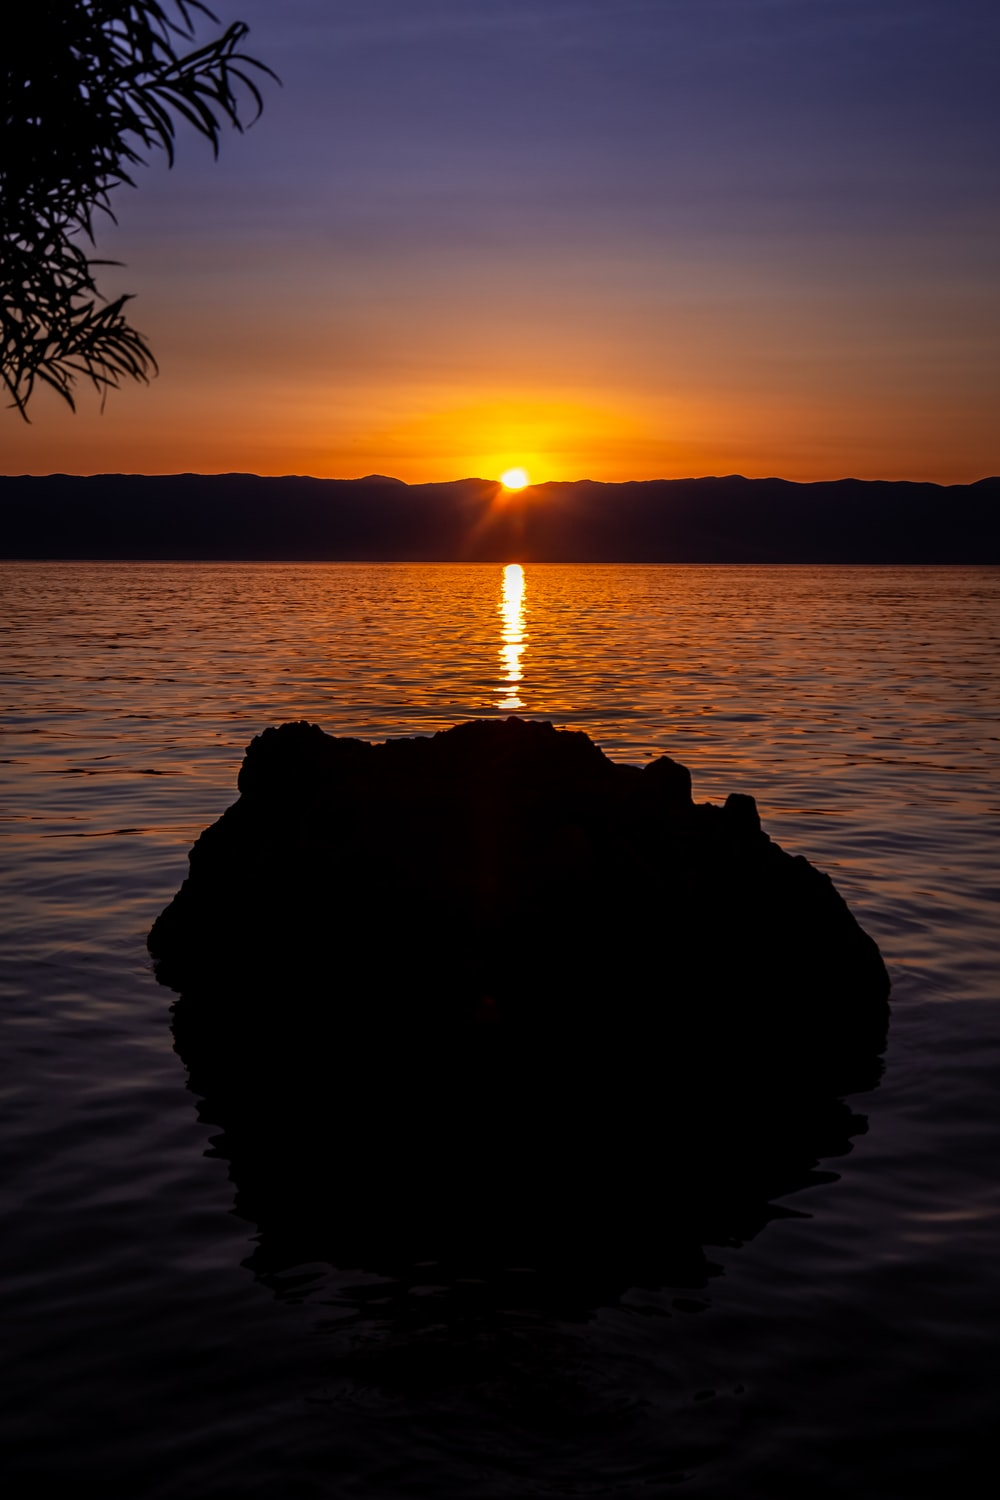 silhouette of rock on water during sunset